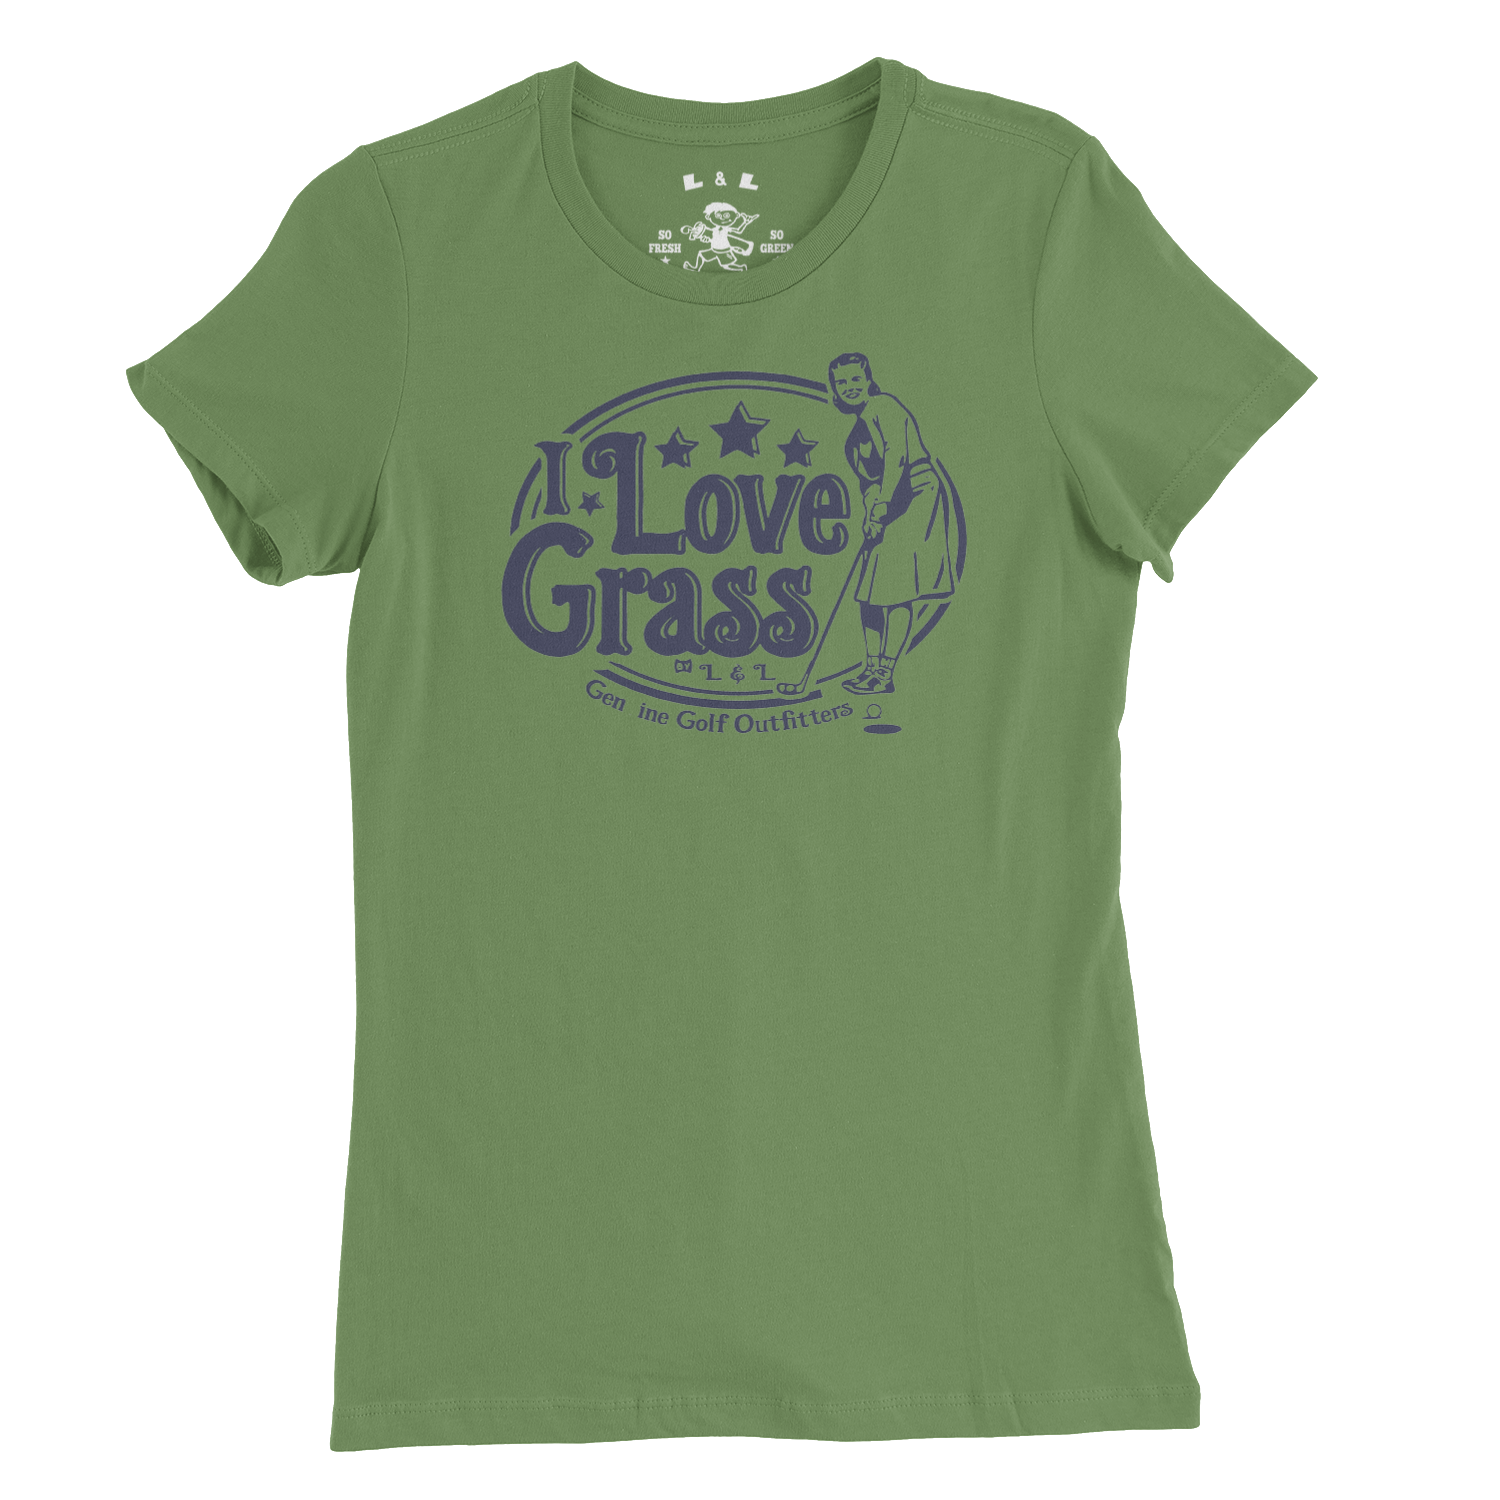 I LOVE GRASS by L&L-WMNS